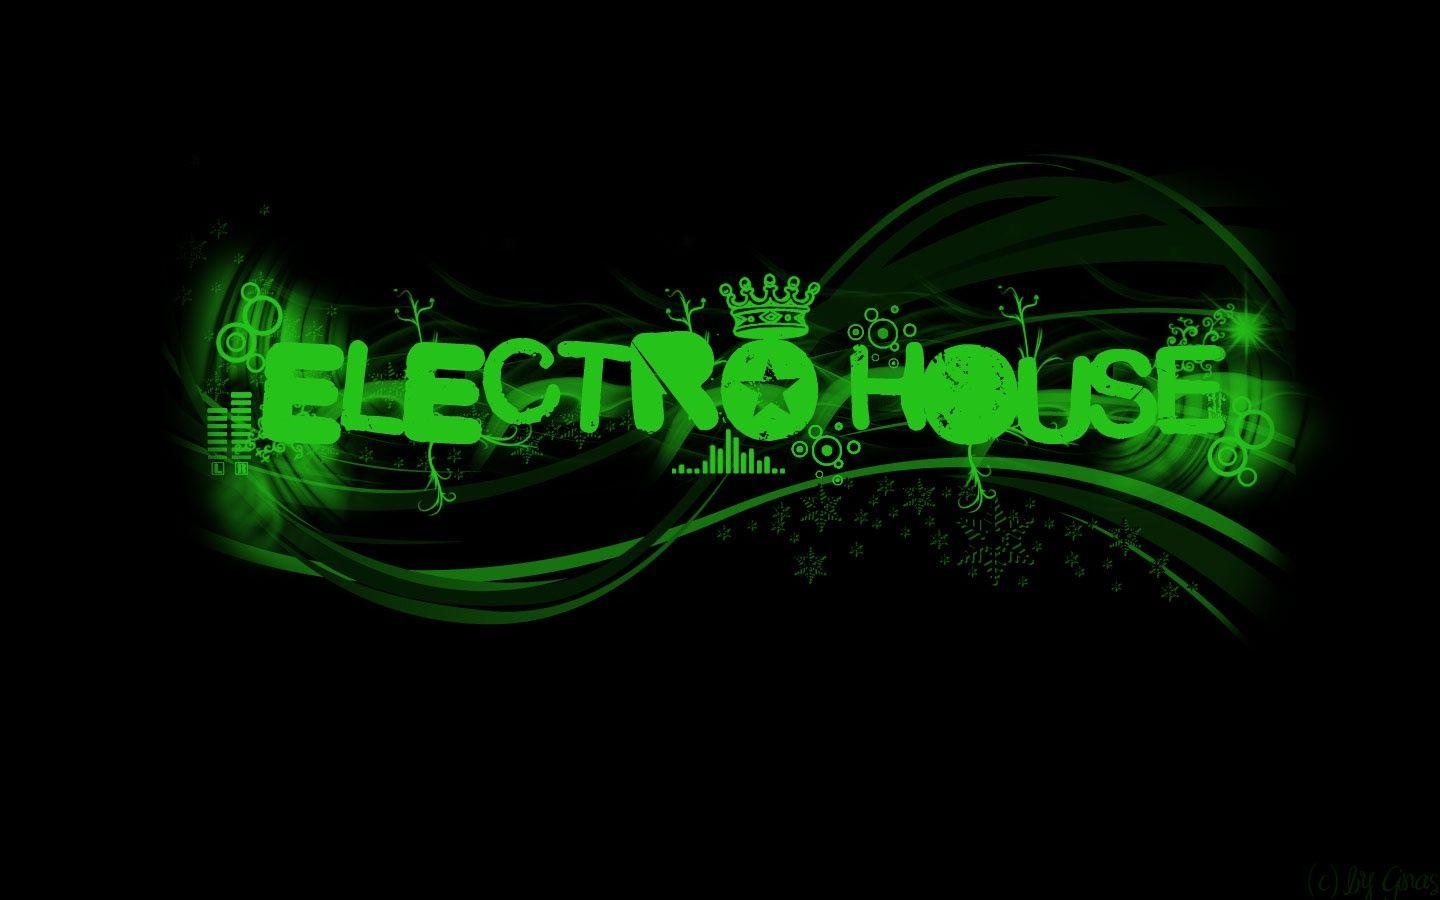 1440x900 Electro House wallpaper, music and dance wallpapers